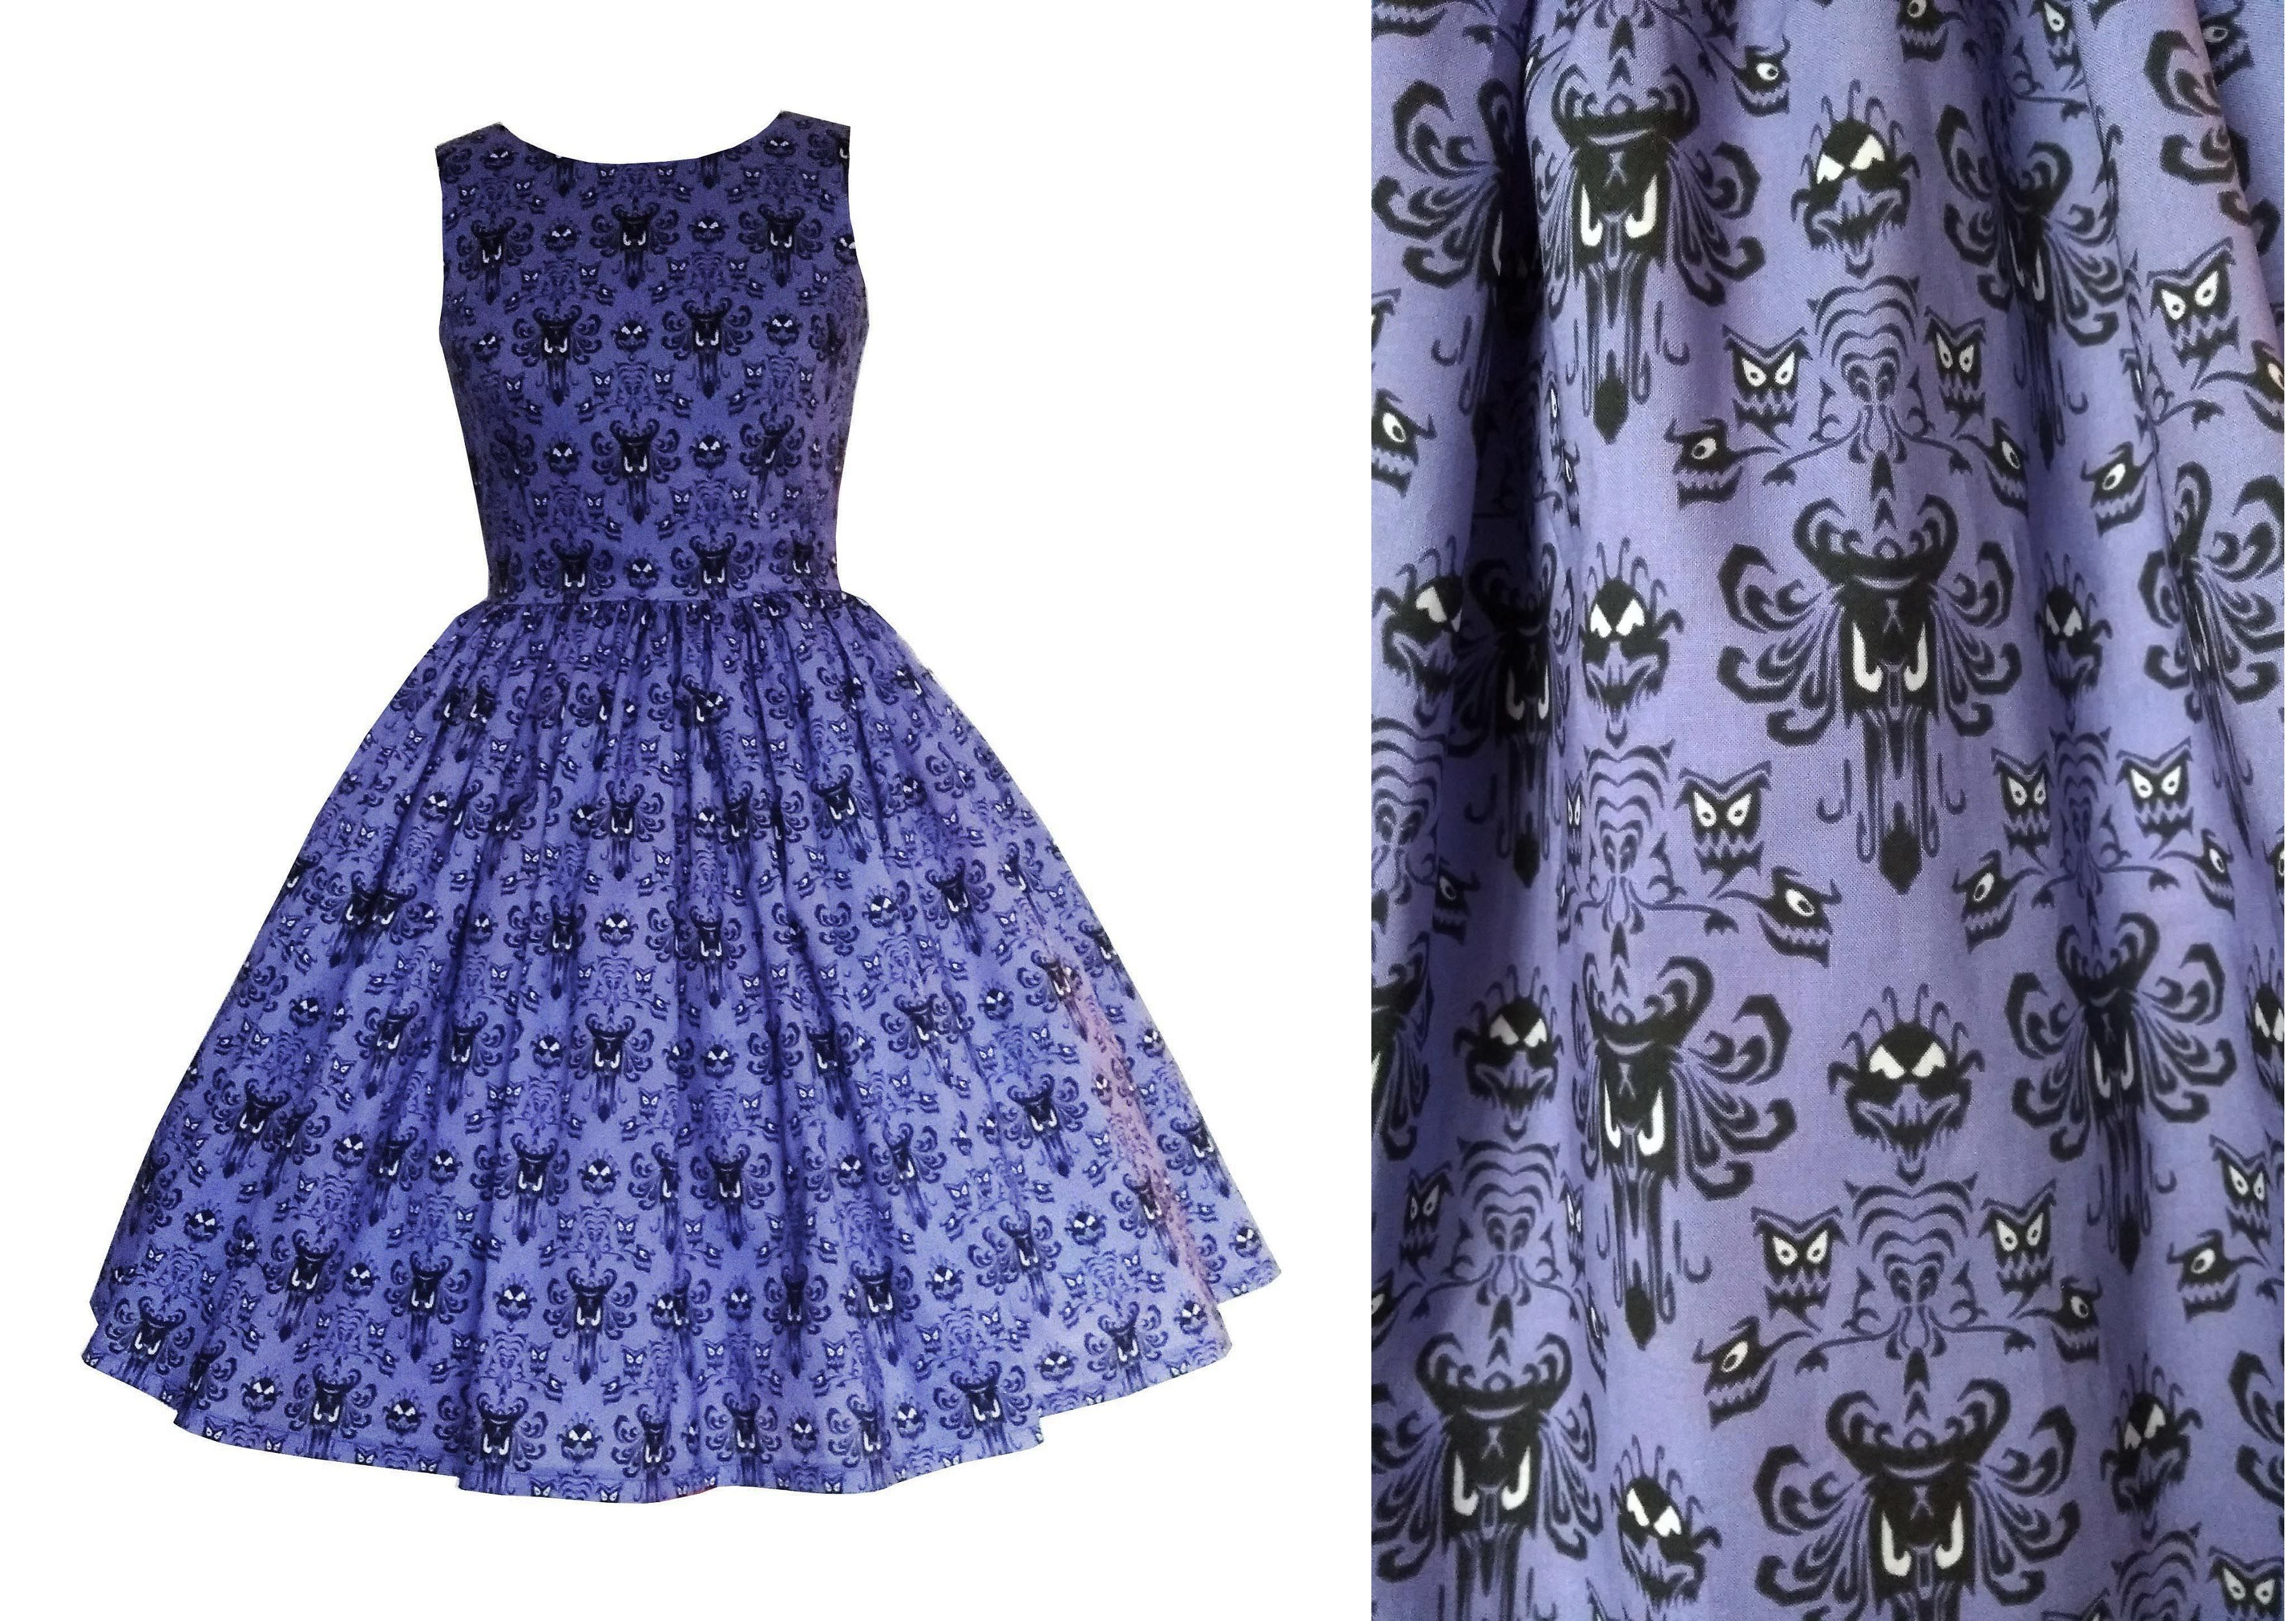 Haunted Mansion Wallpaper fabric dress inspired by the